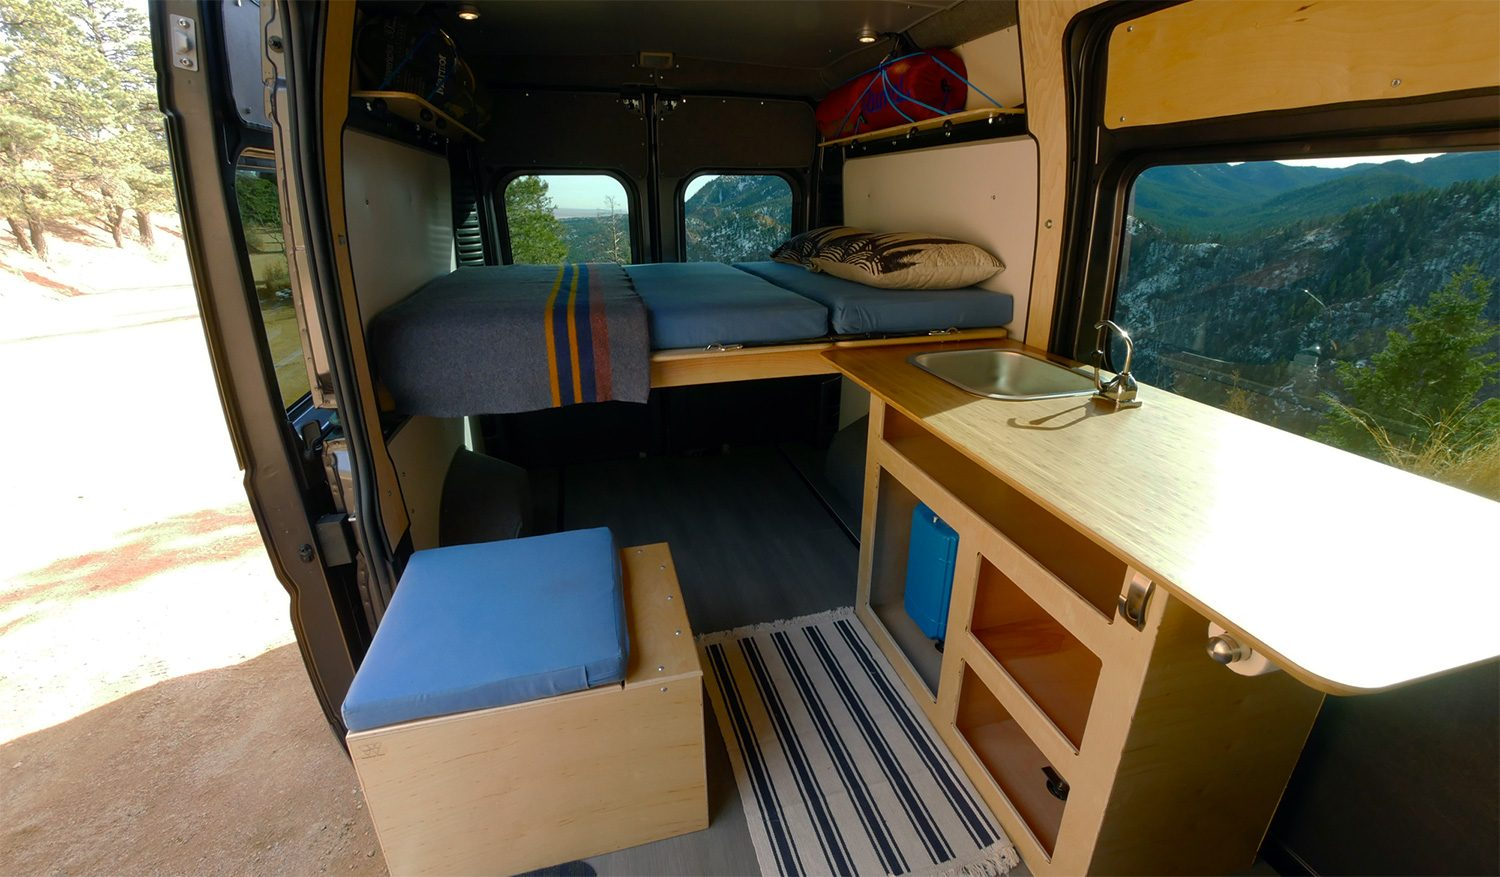 The Wayfarer Vans Promaster conversion kit